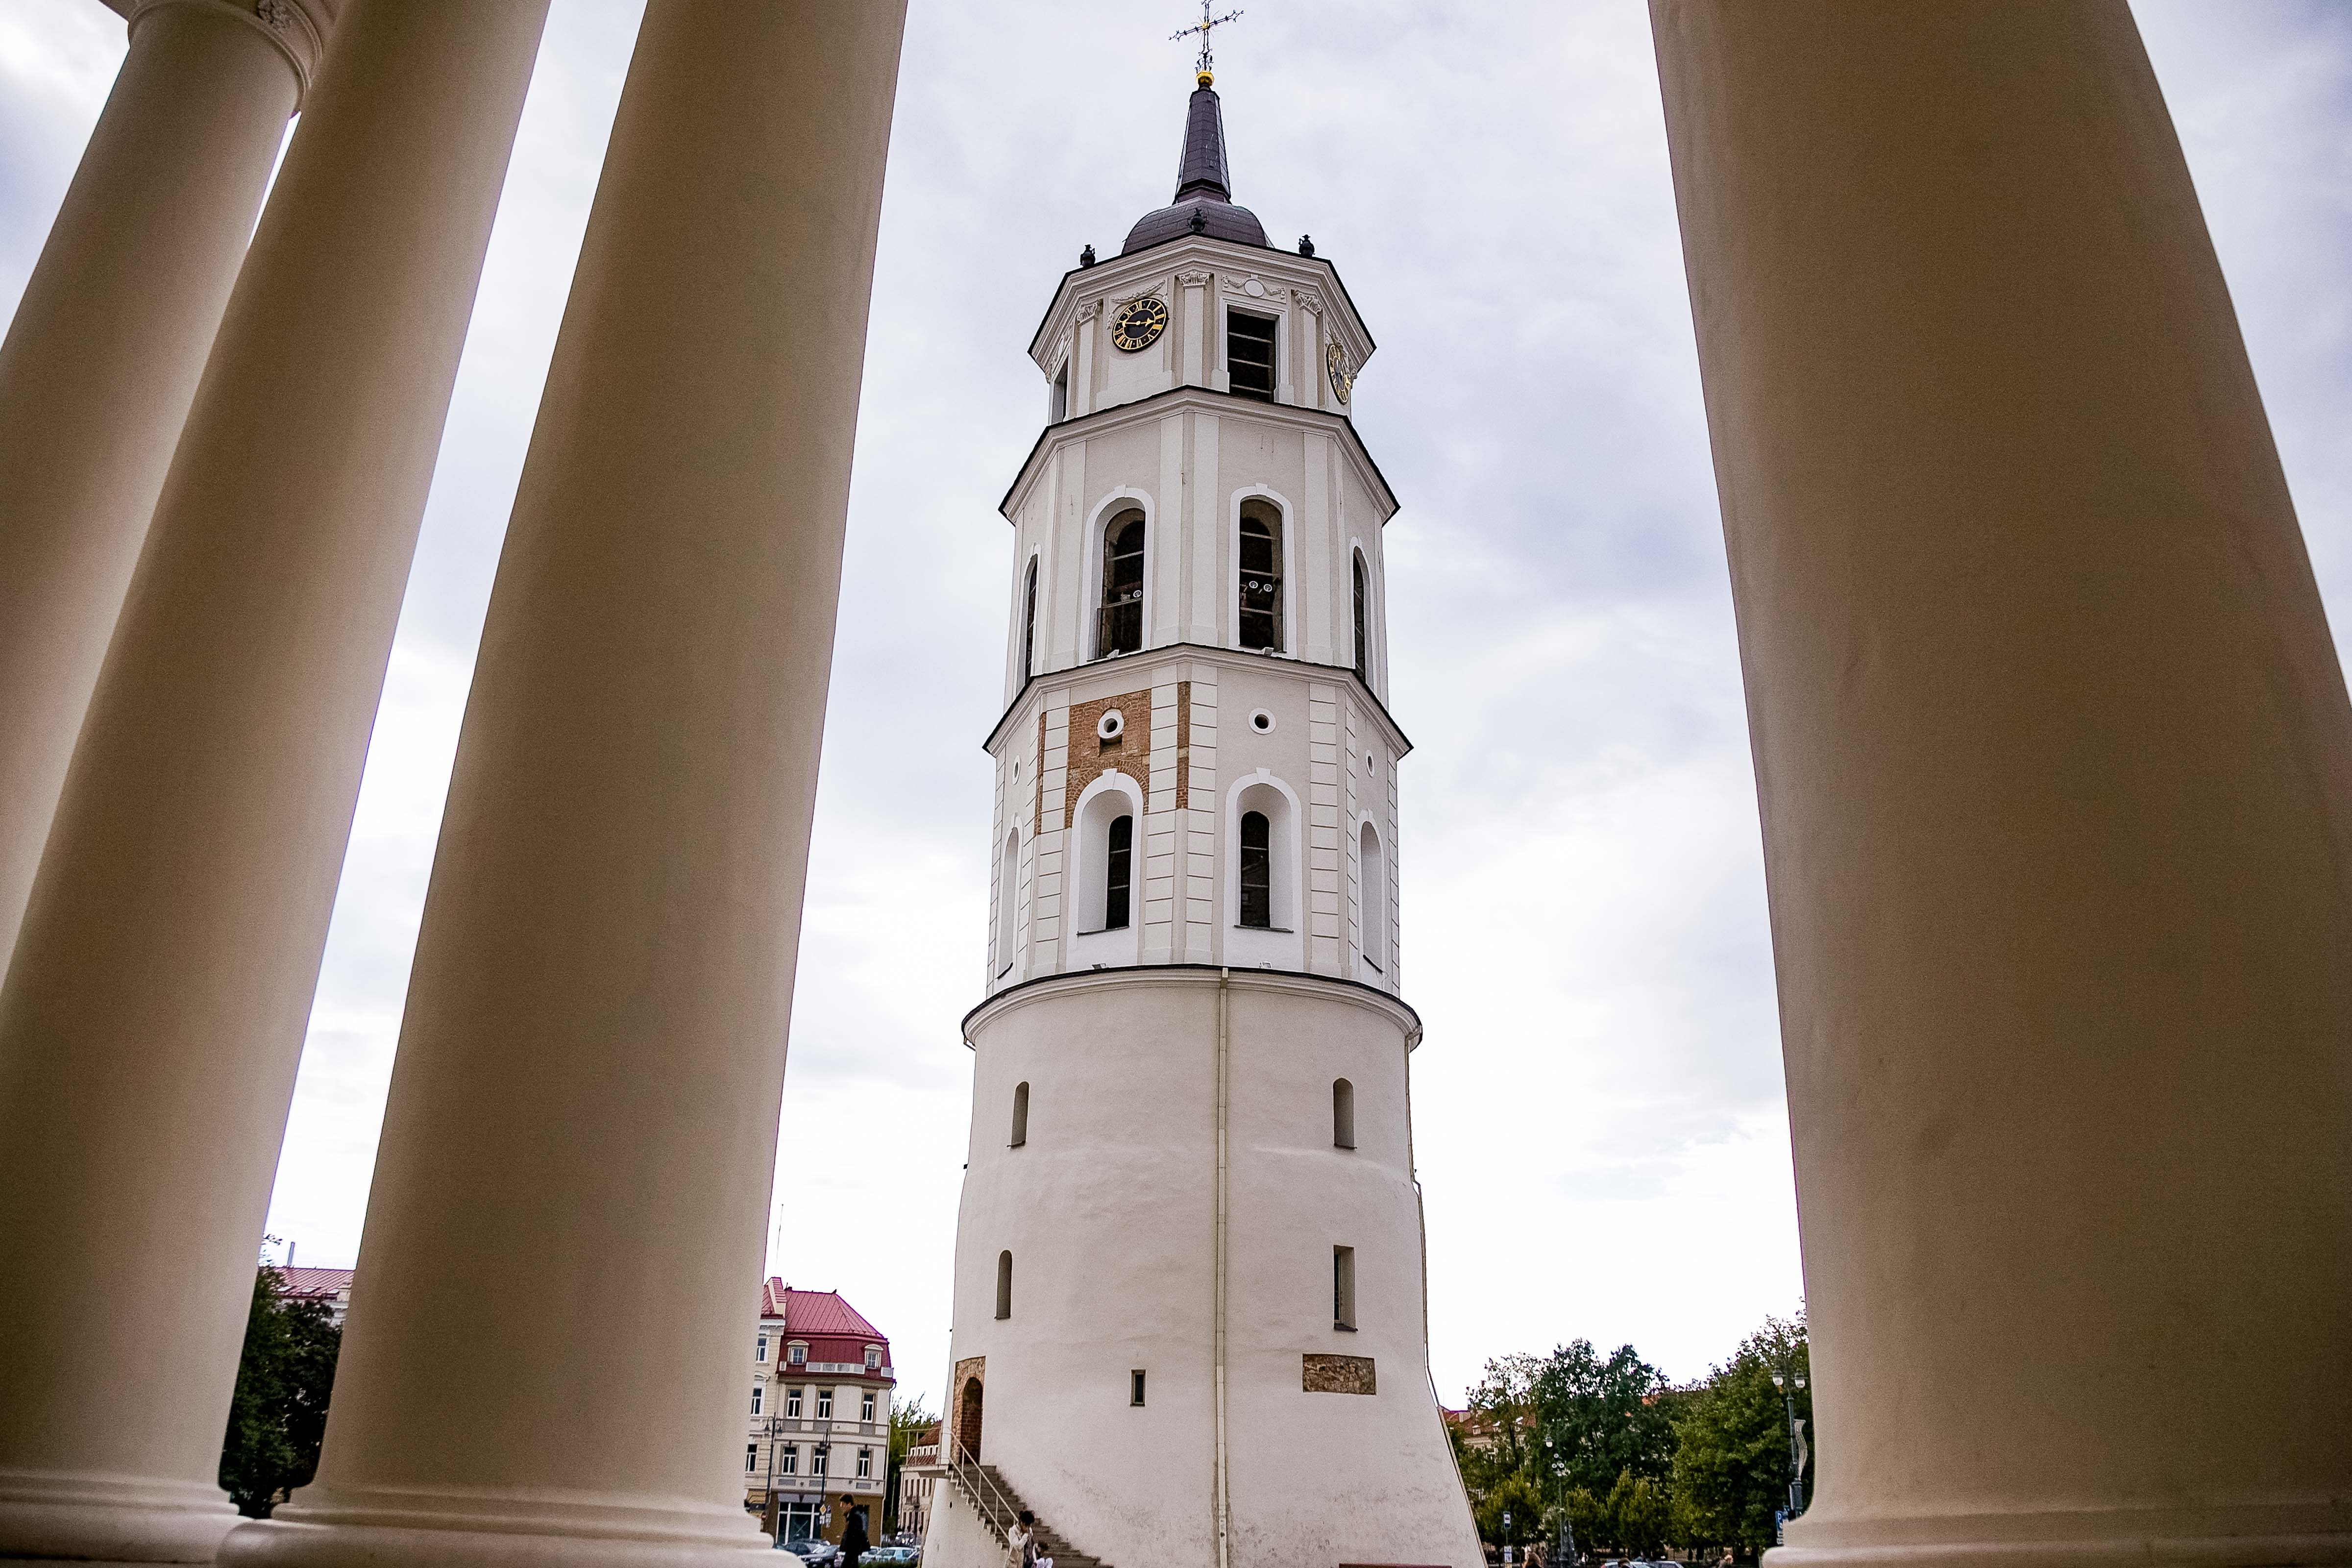 Lithuania, Vilnius, Cathedral Pillars And Tower, 2010, IMG_3092